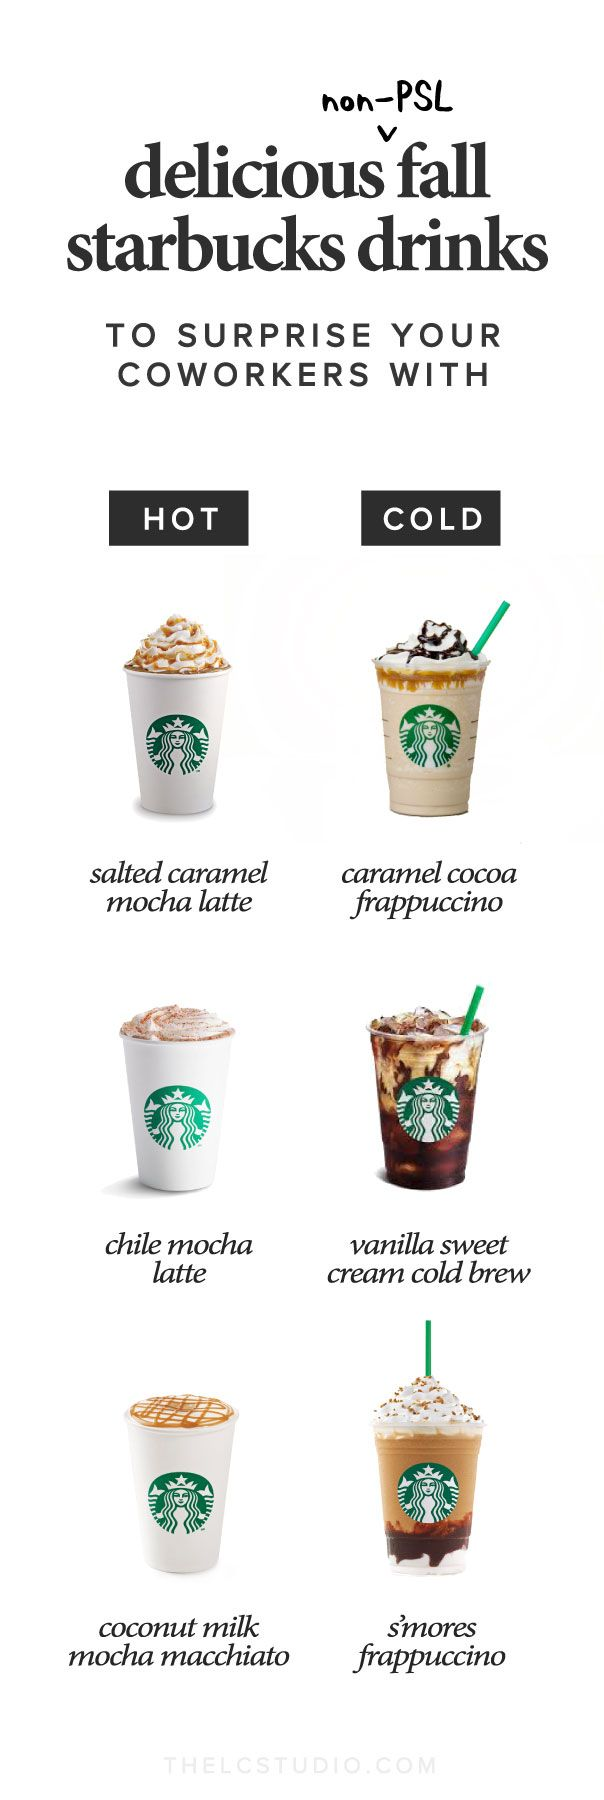 Delicious Non-PSL Fall Starbucks Drinks to Surprise Your Coworkers | The LC Studio